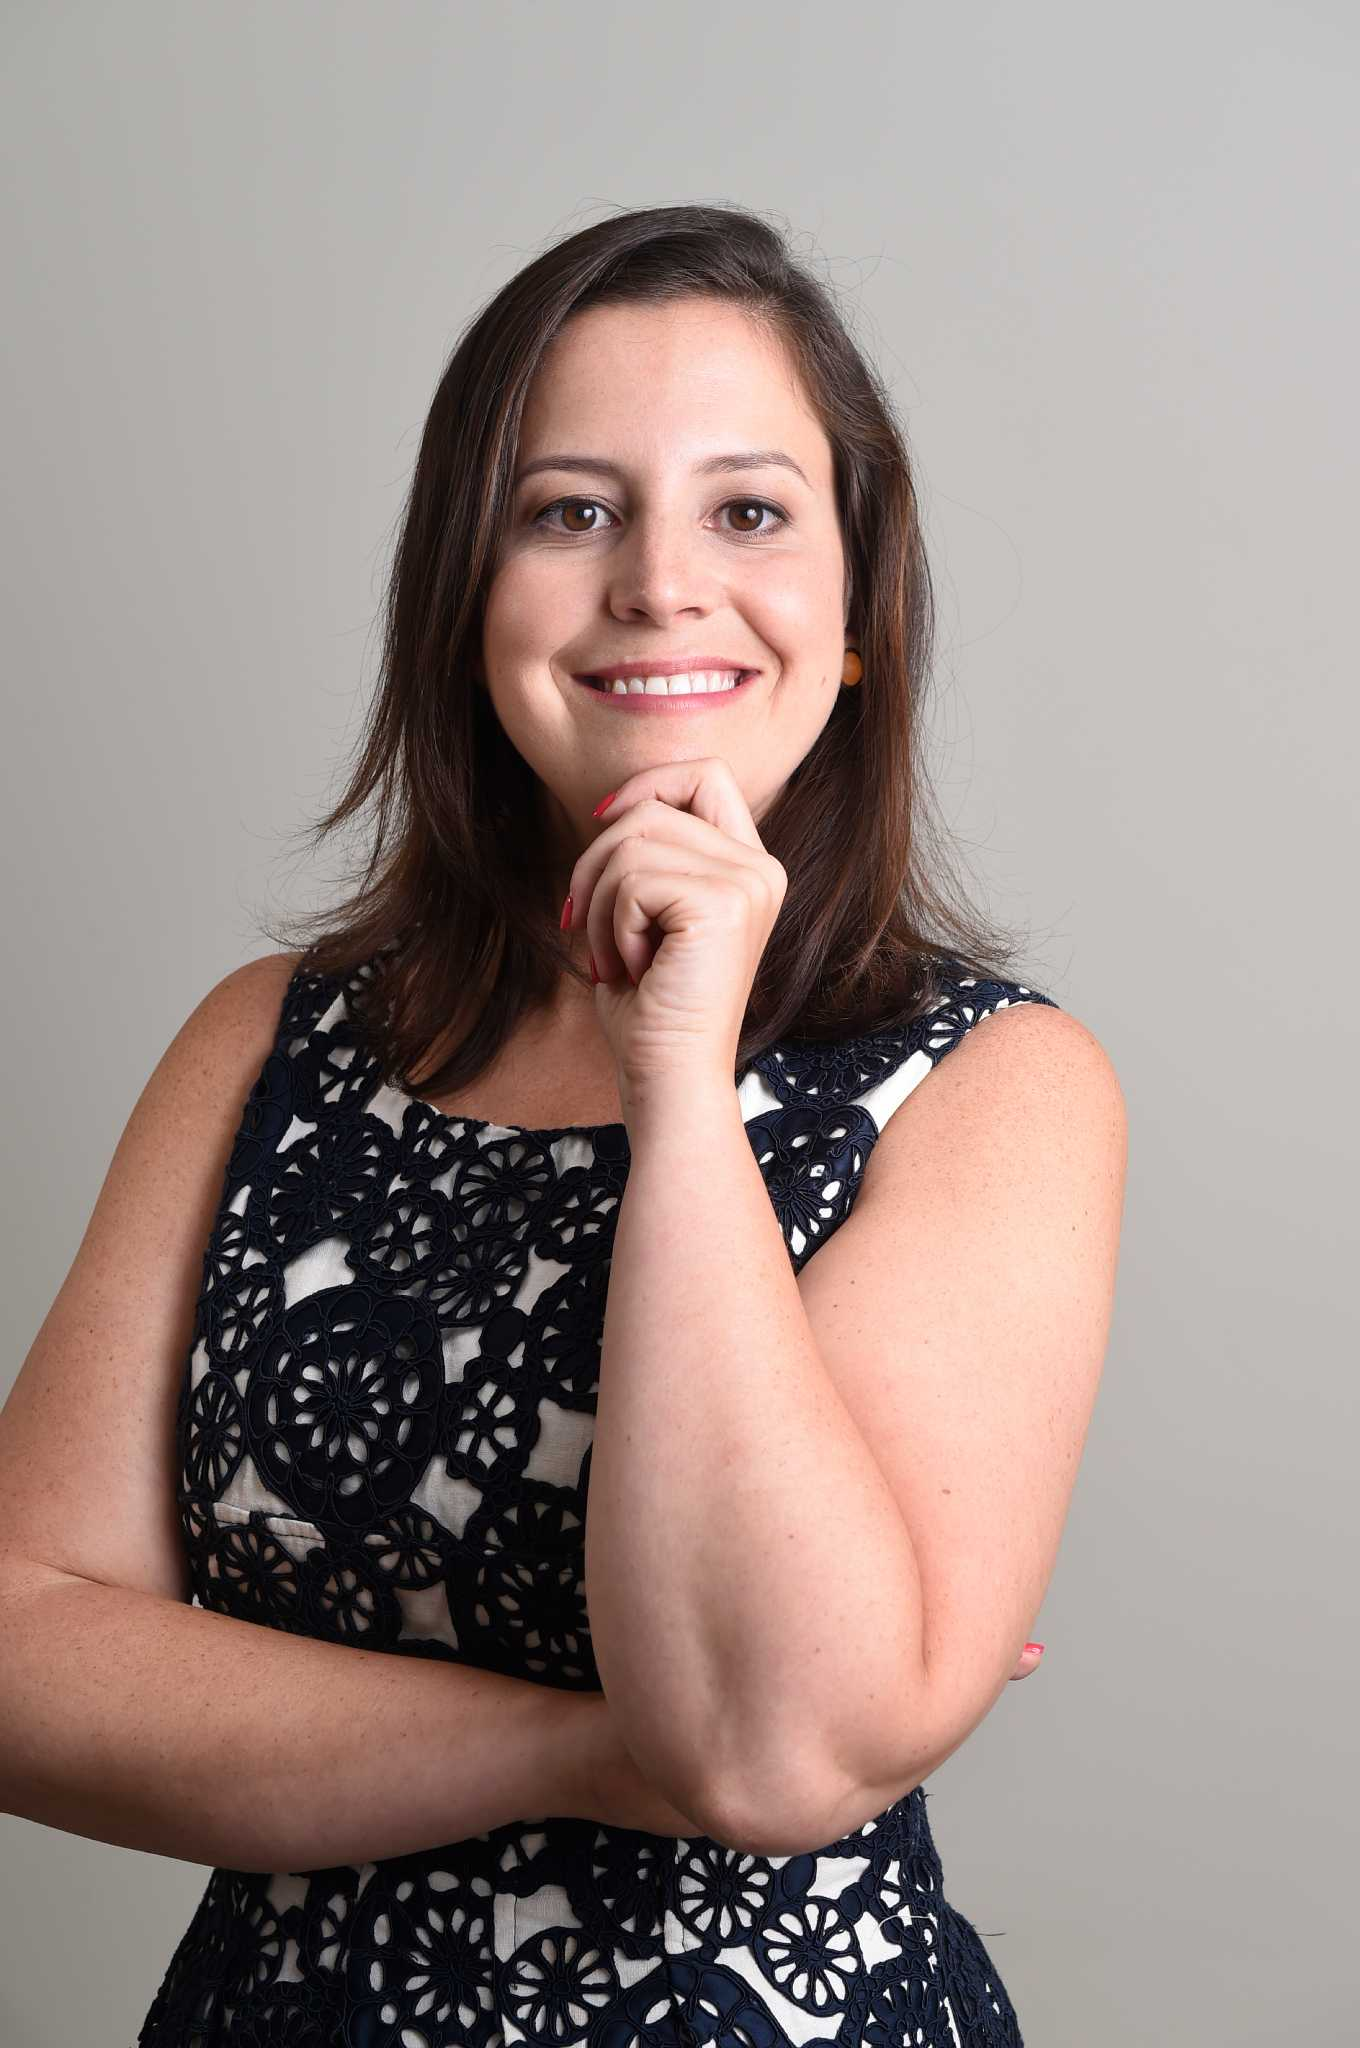 Elise Stefanik: Q&A on women in politics